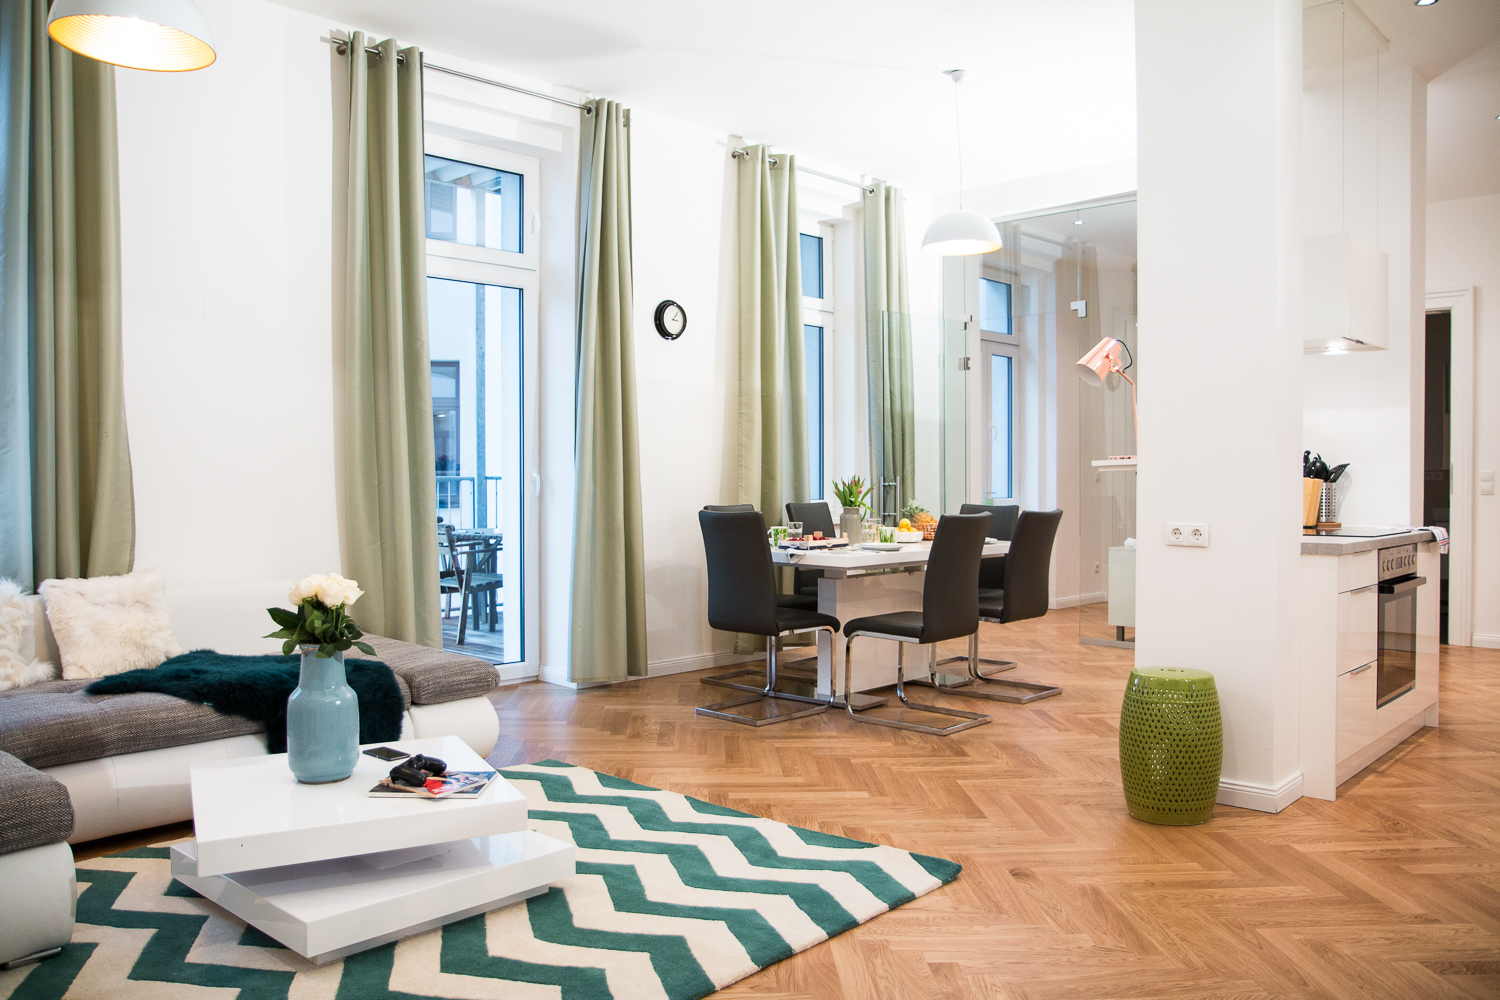 A1 One! Alles in einem - #ONEderful Home   Love Daily Dose